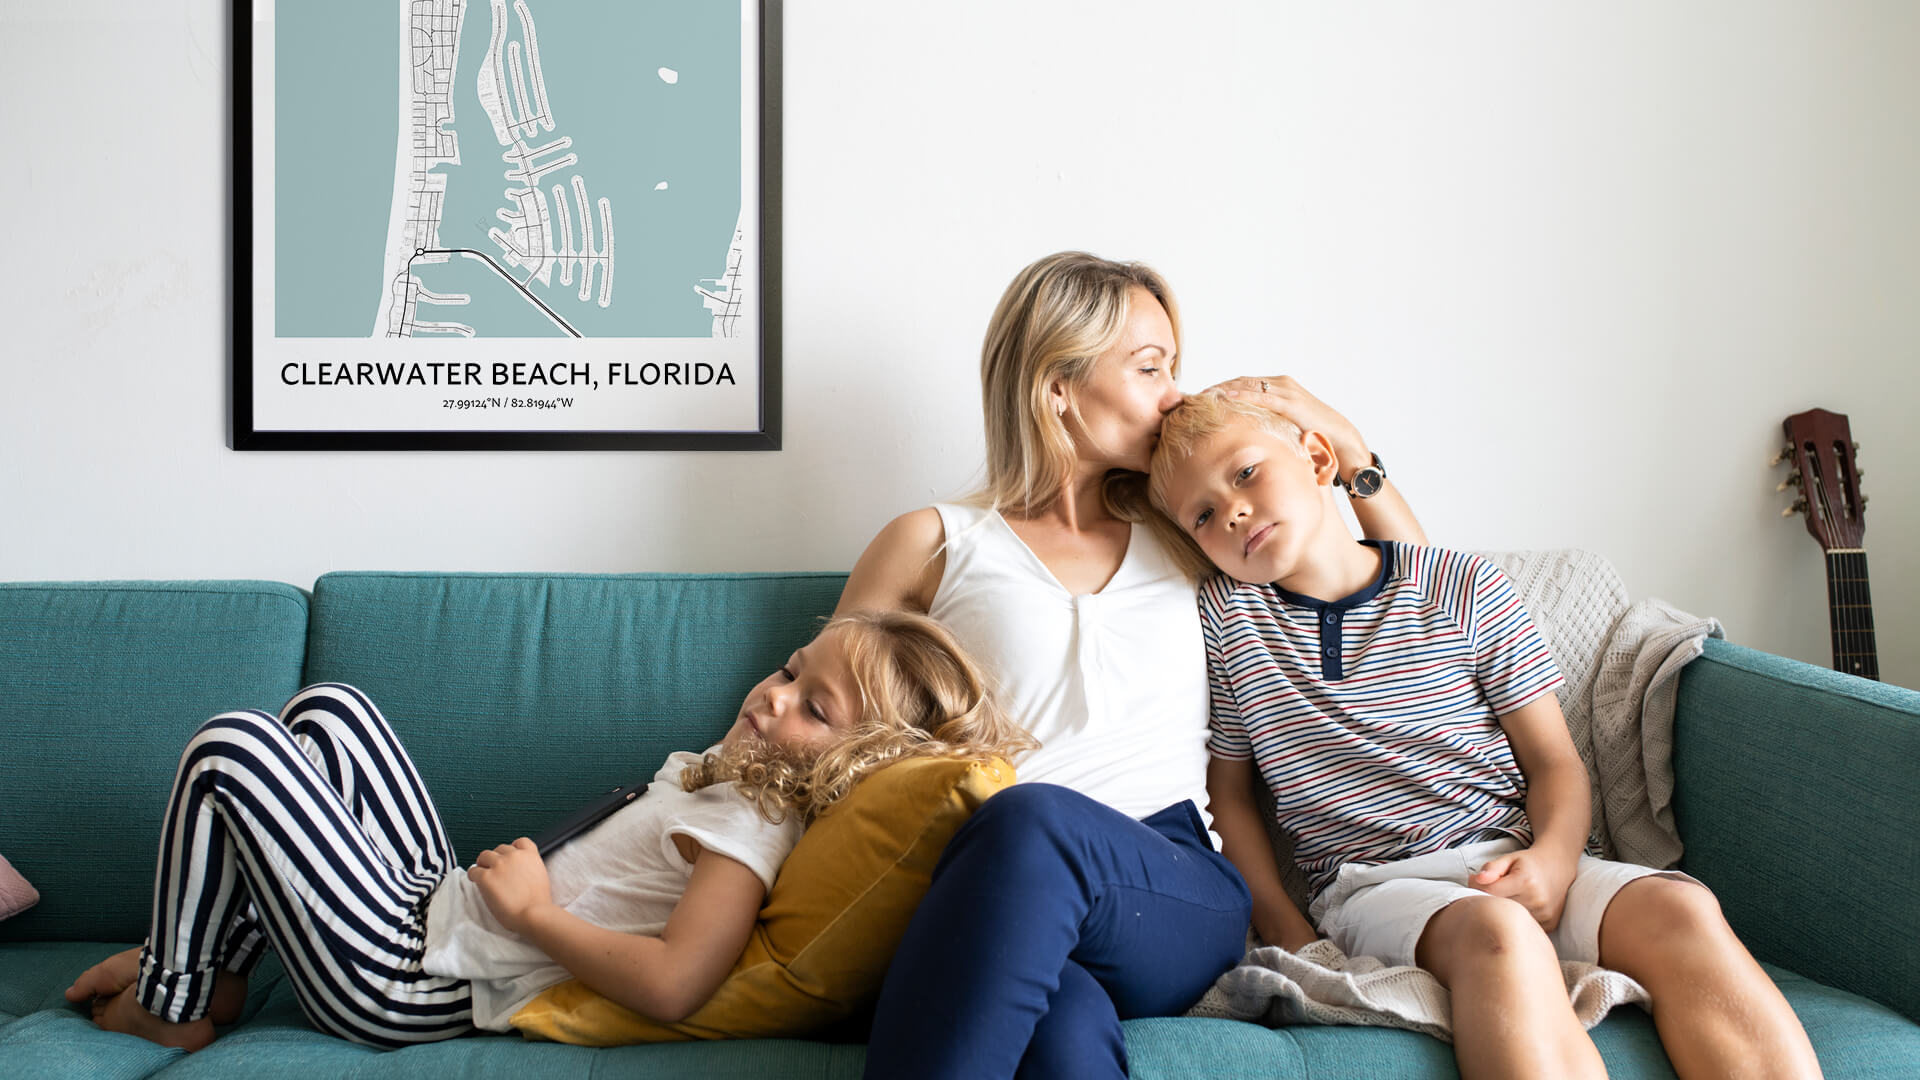 Clearwater Beach map poster